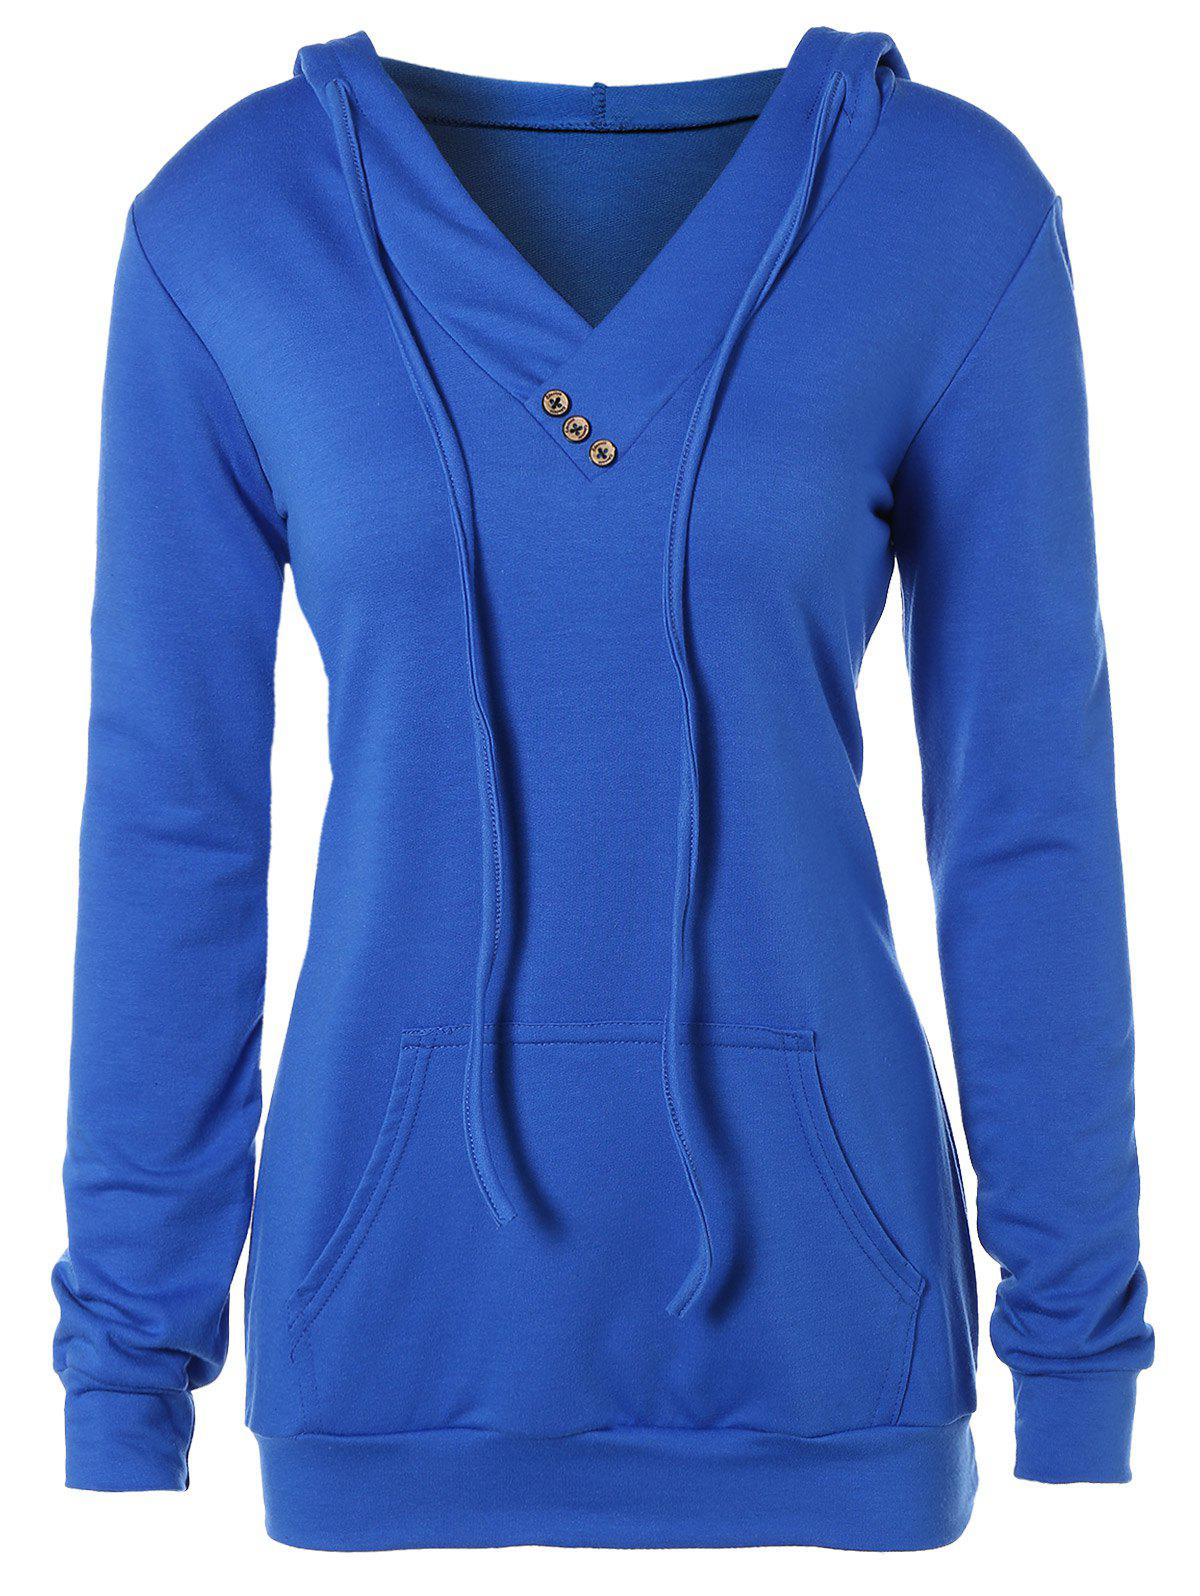 Buttoned Plus Size Drawstring HoodieWOMEN<br><br>Size: 2XL; Color: ROYAL BLUE; Material: Polyester; Shirt Length: Regular; Sleeve Length: Full; Collar: Hooded; Style: Fashion; Season: Fall,Spring; Embellishment: Button; Pattern Type: Solid; Weight: 0.432kg; Package Contents: 1 x Hoodie;